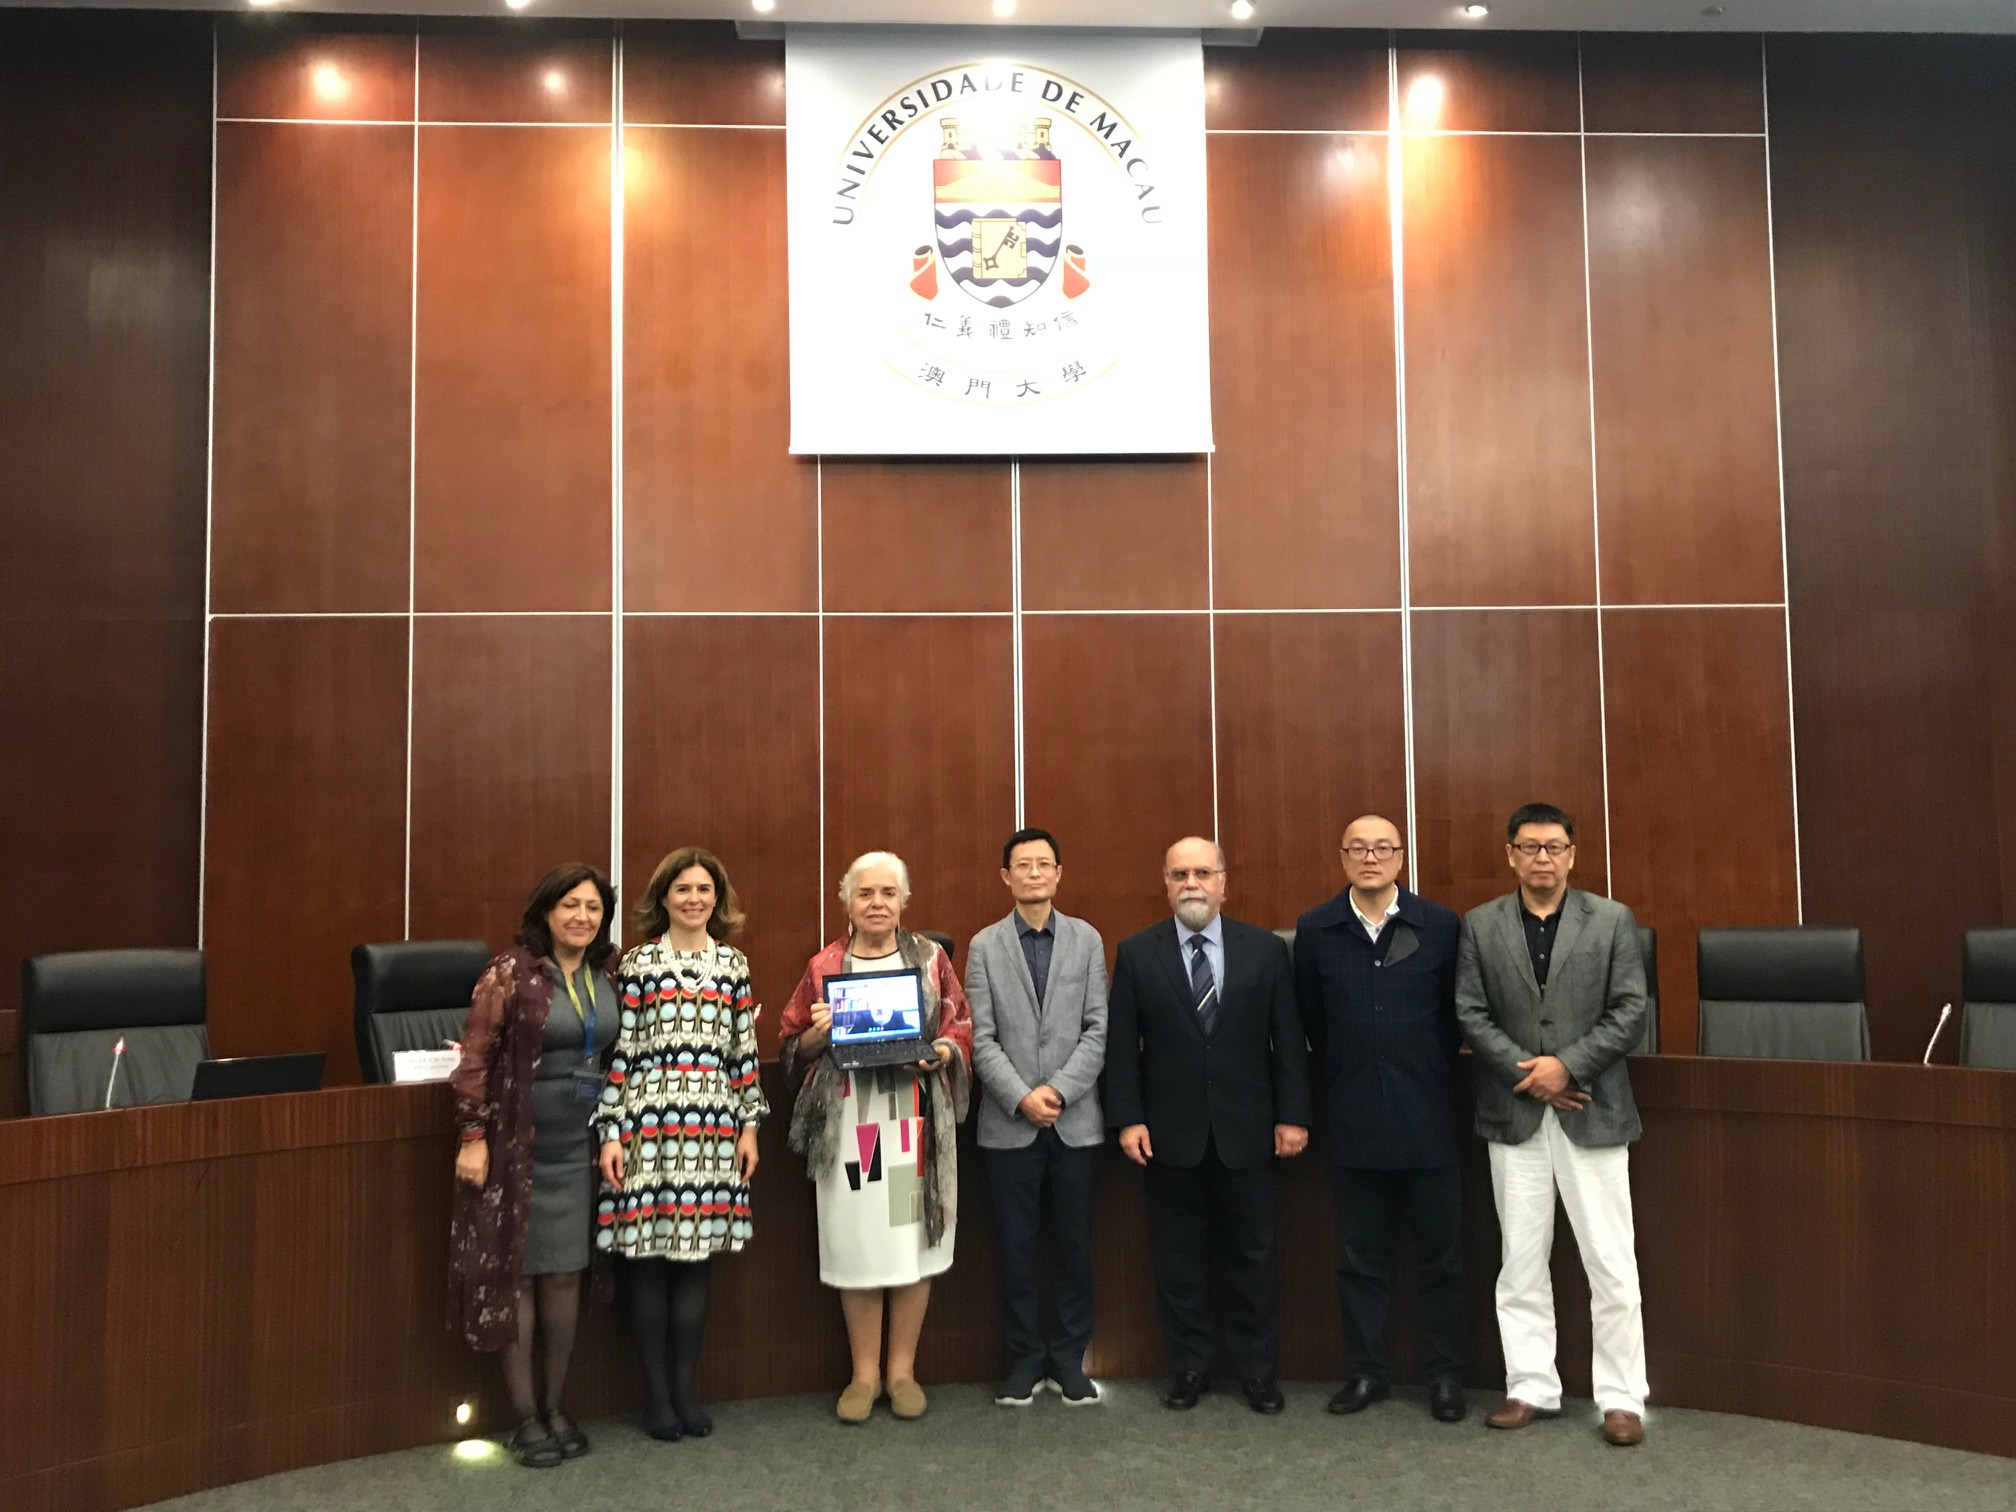 Lu Chi Seng (middle) is the first PhD student in Macao to have completed an oral defense for a thesis on Chinese-Portuguese bilingual legal translation